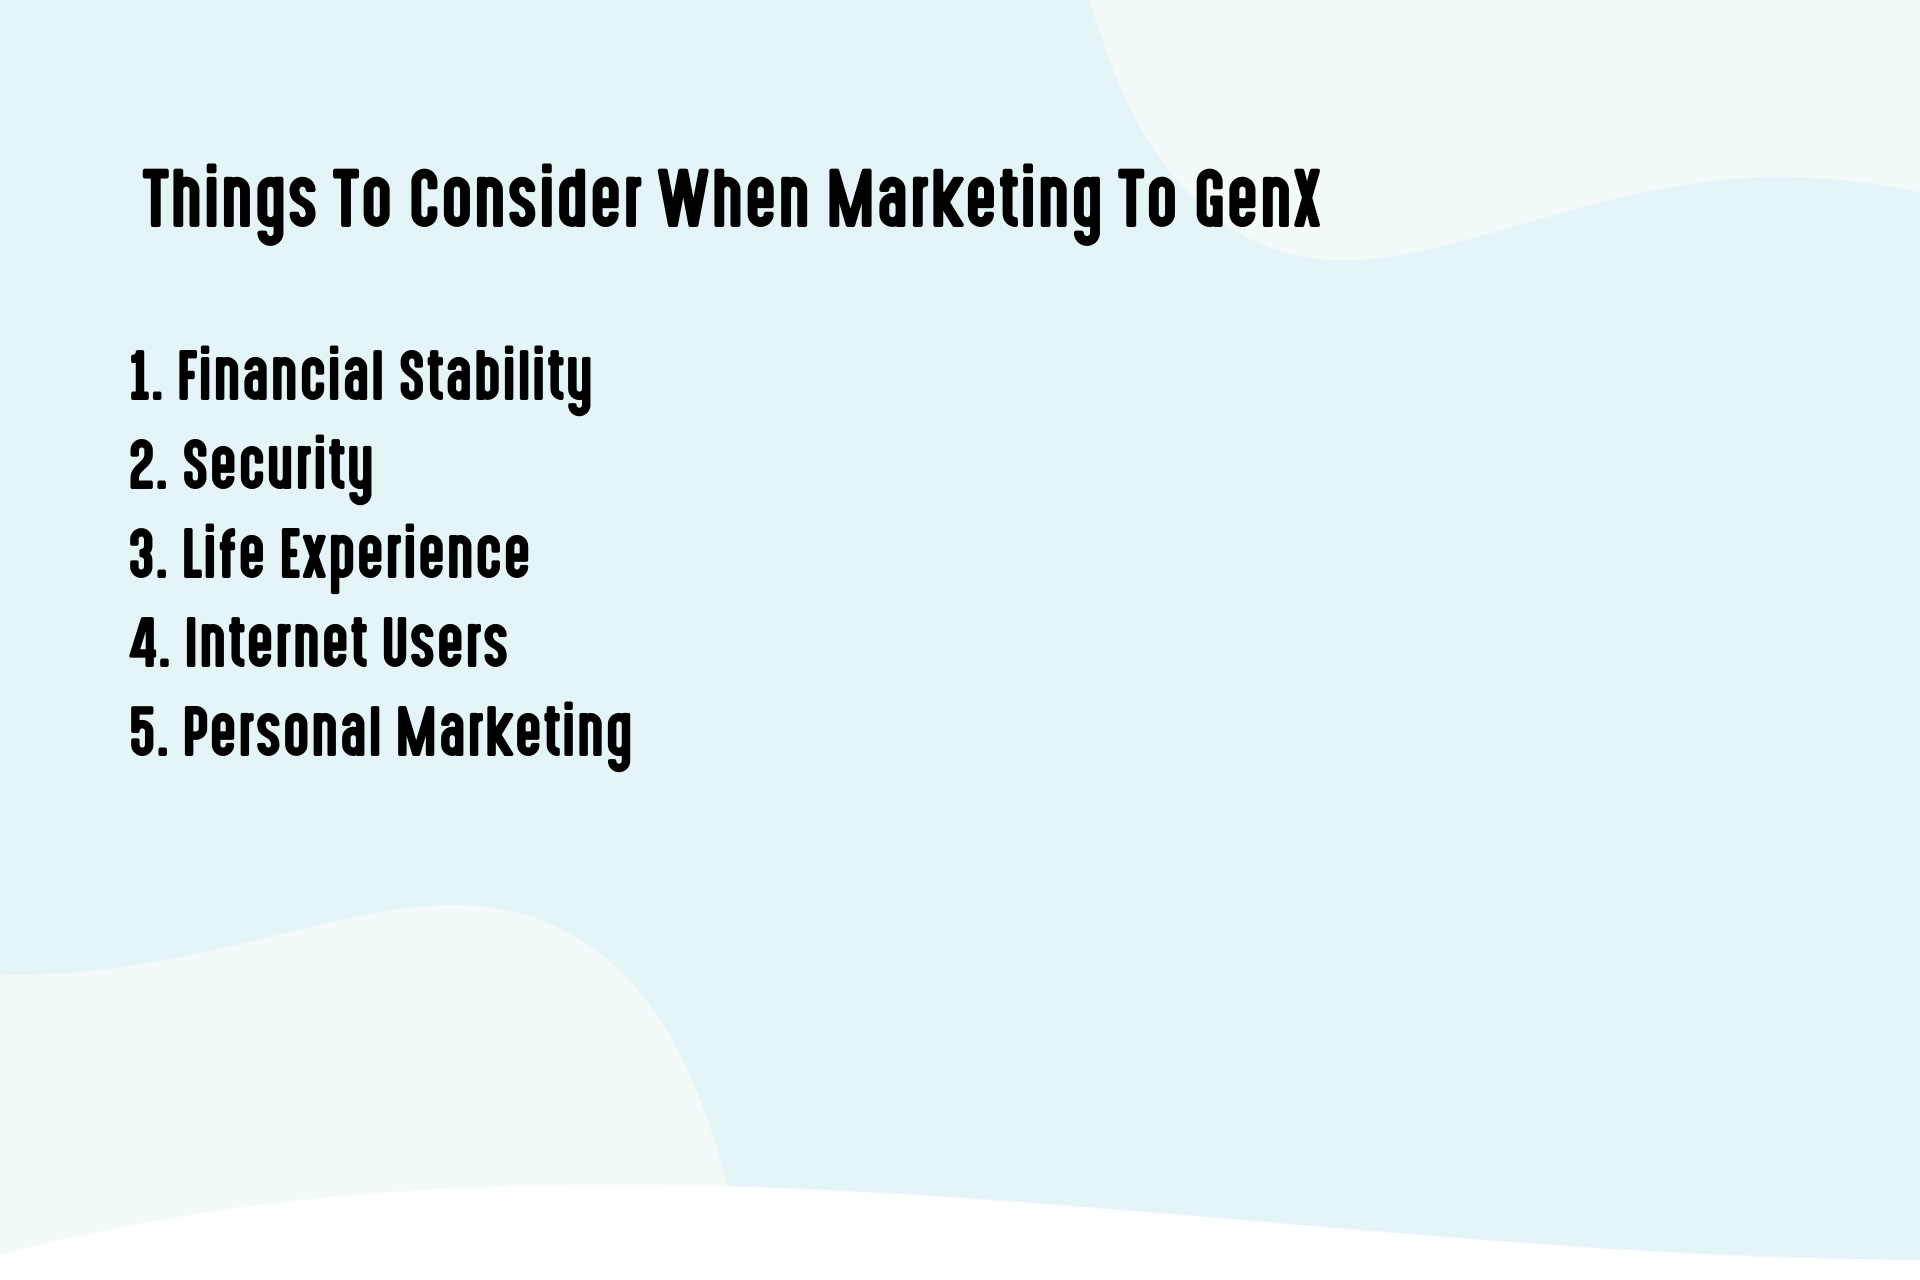 Things to consider when marketing to GenX